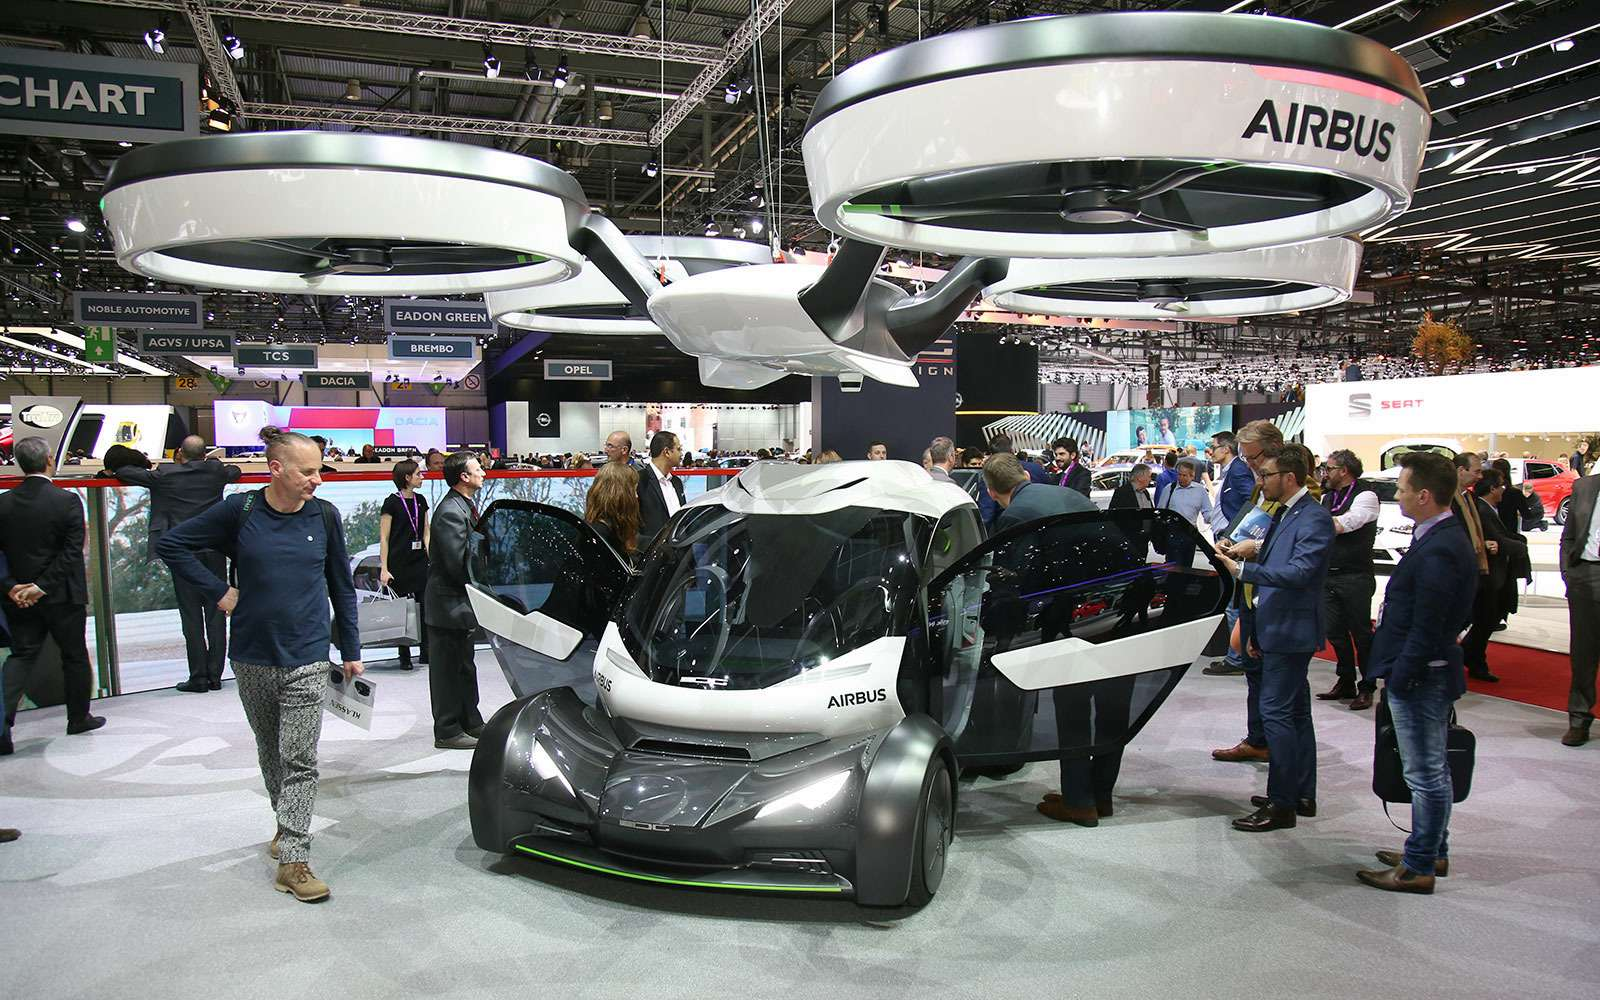 Italdesign Airbus